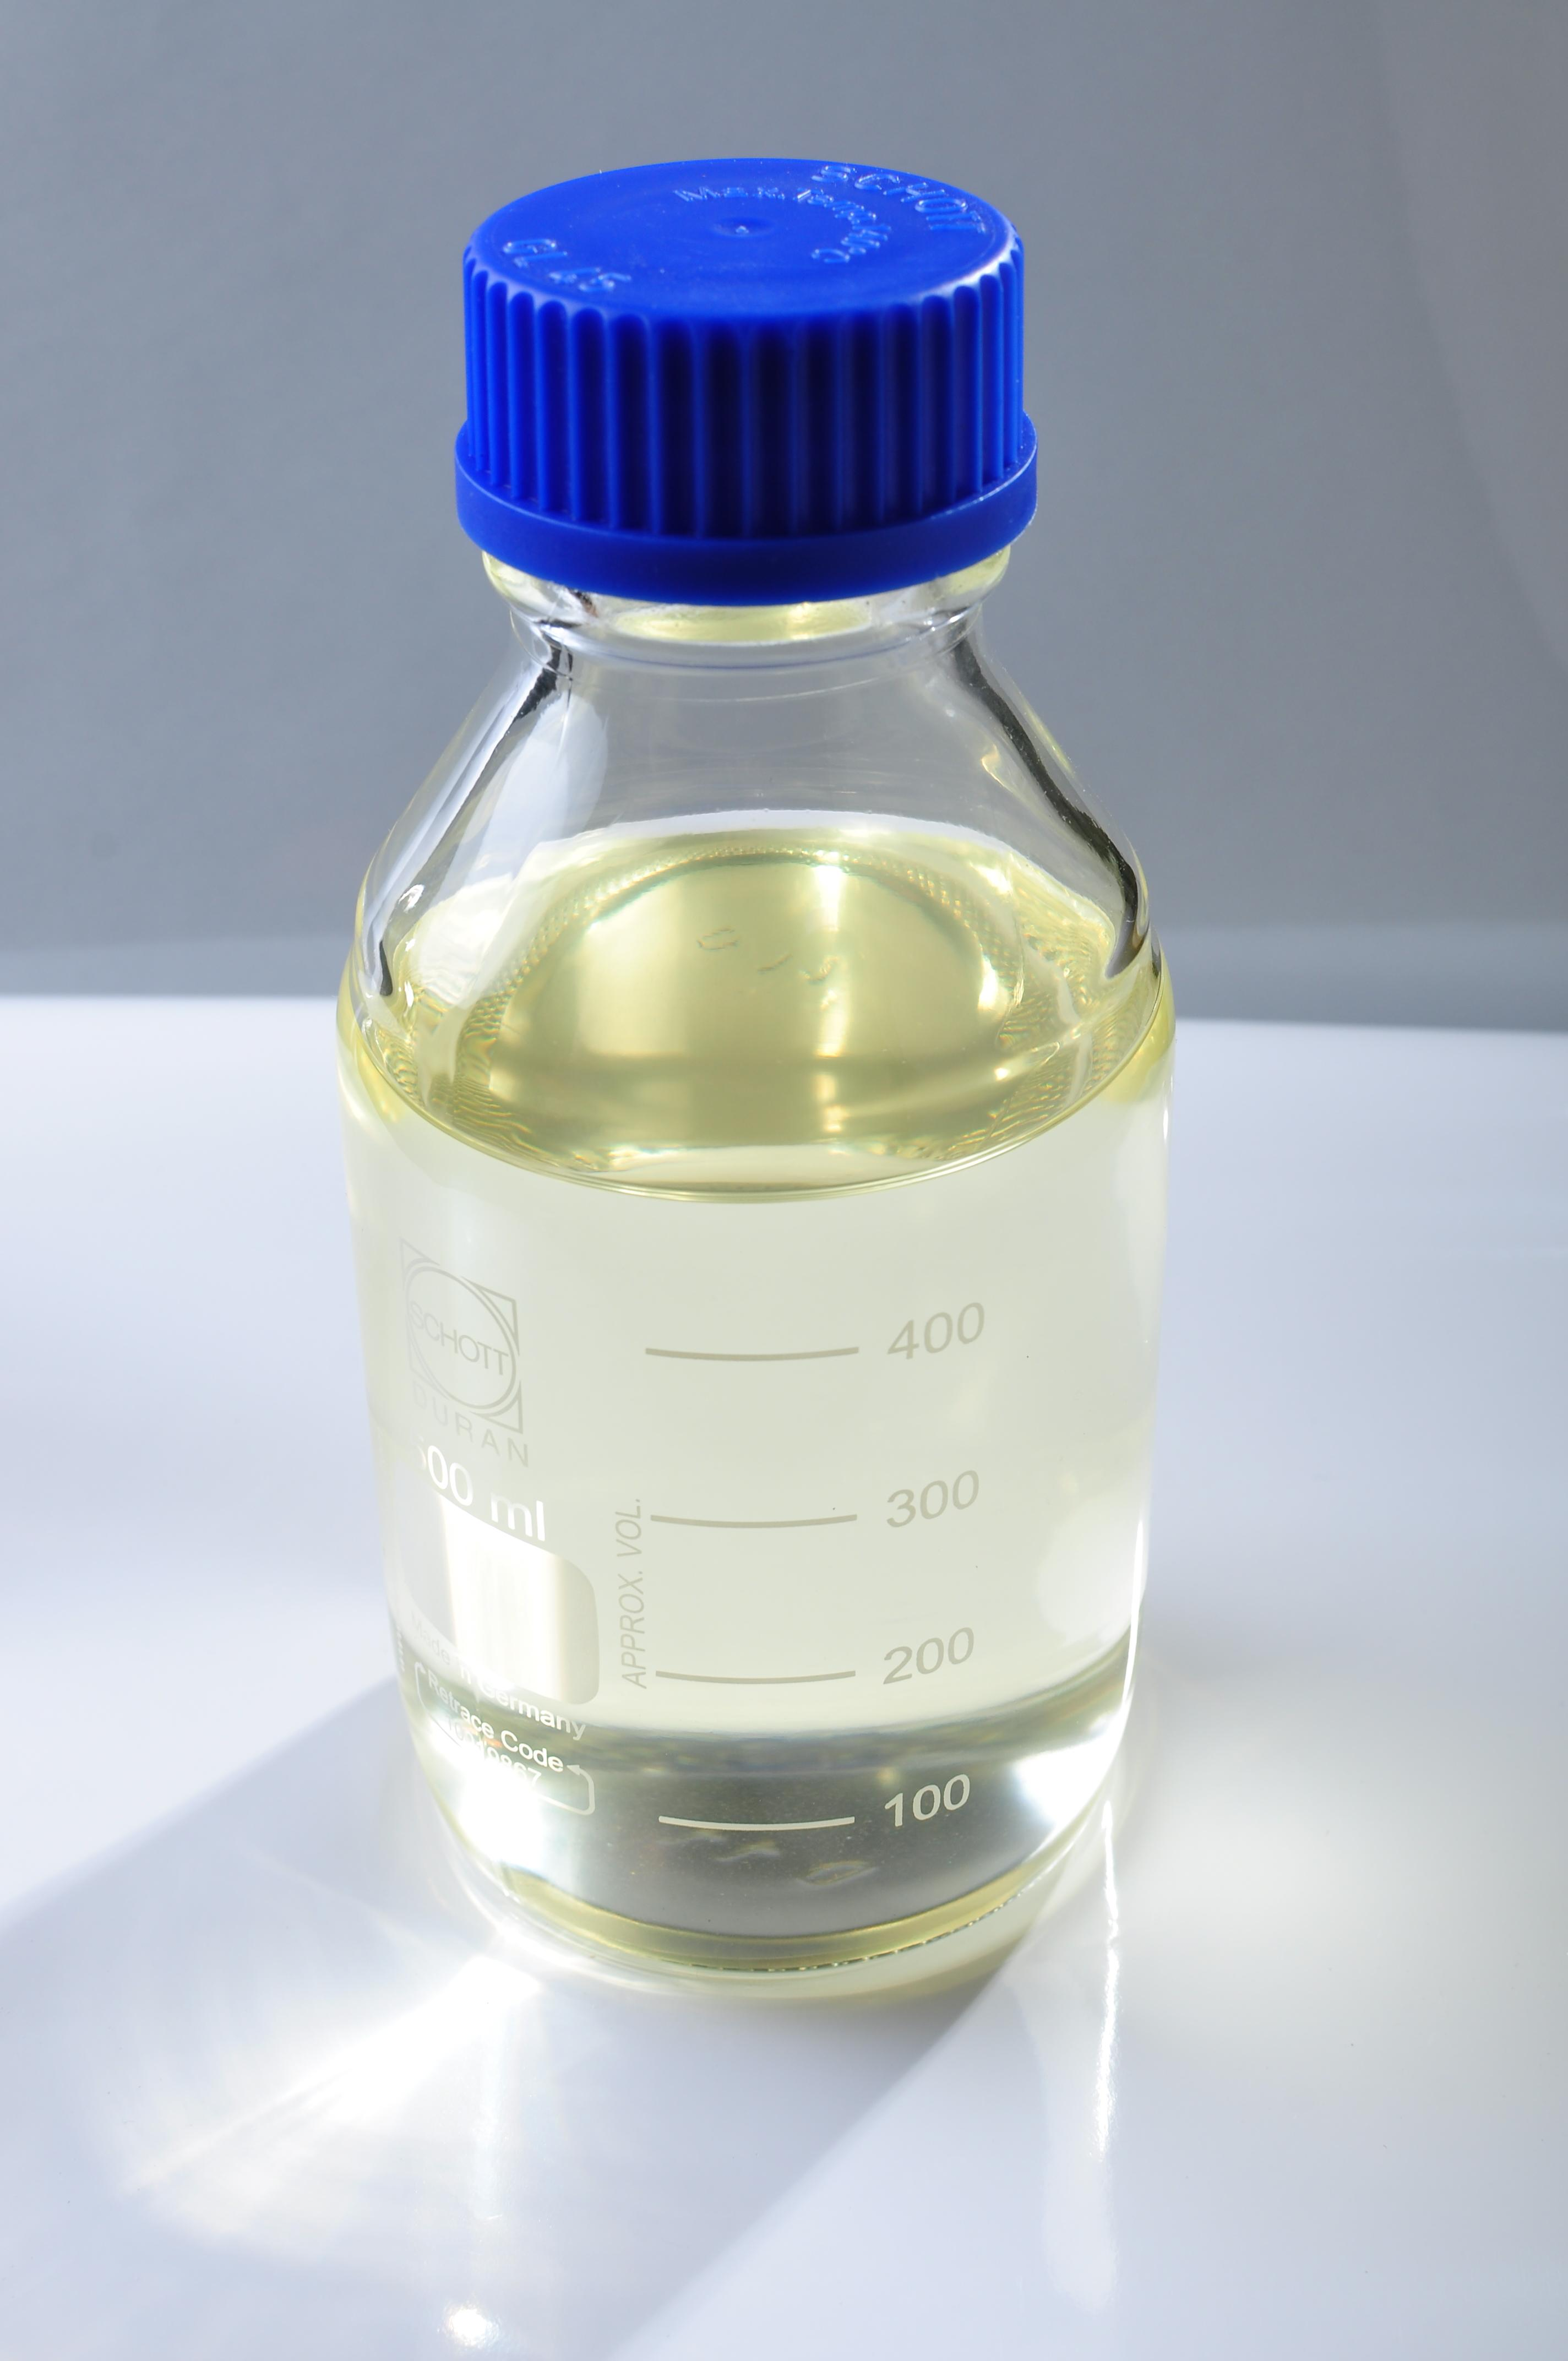 UCO biodiesel with ISCC